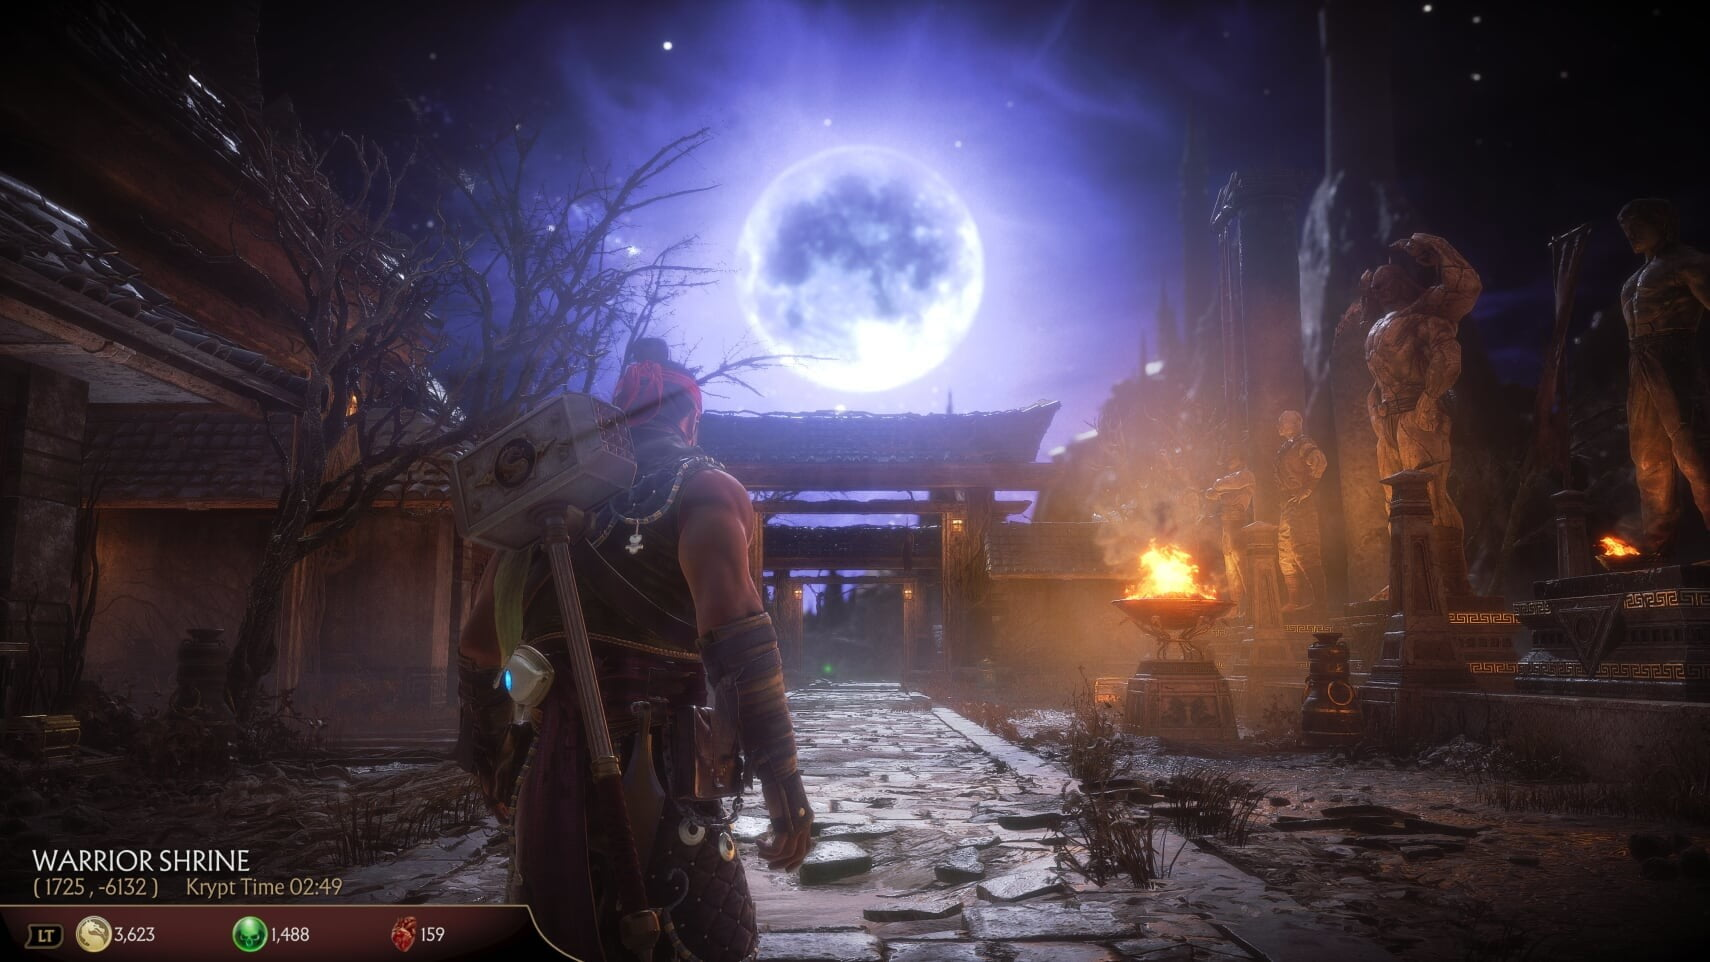 Mortal Kombat 11 Krypt Guide To Getting The Best Gear Digital